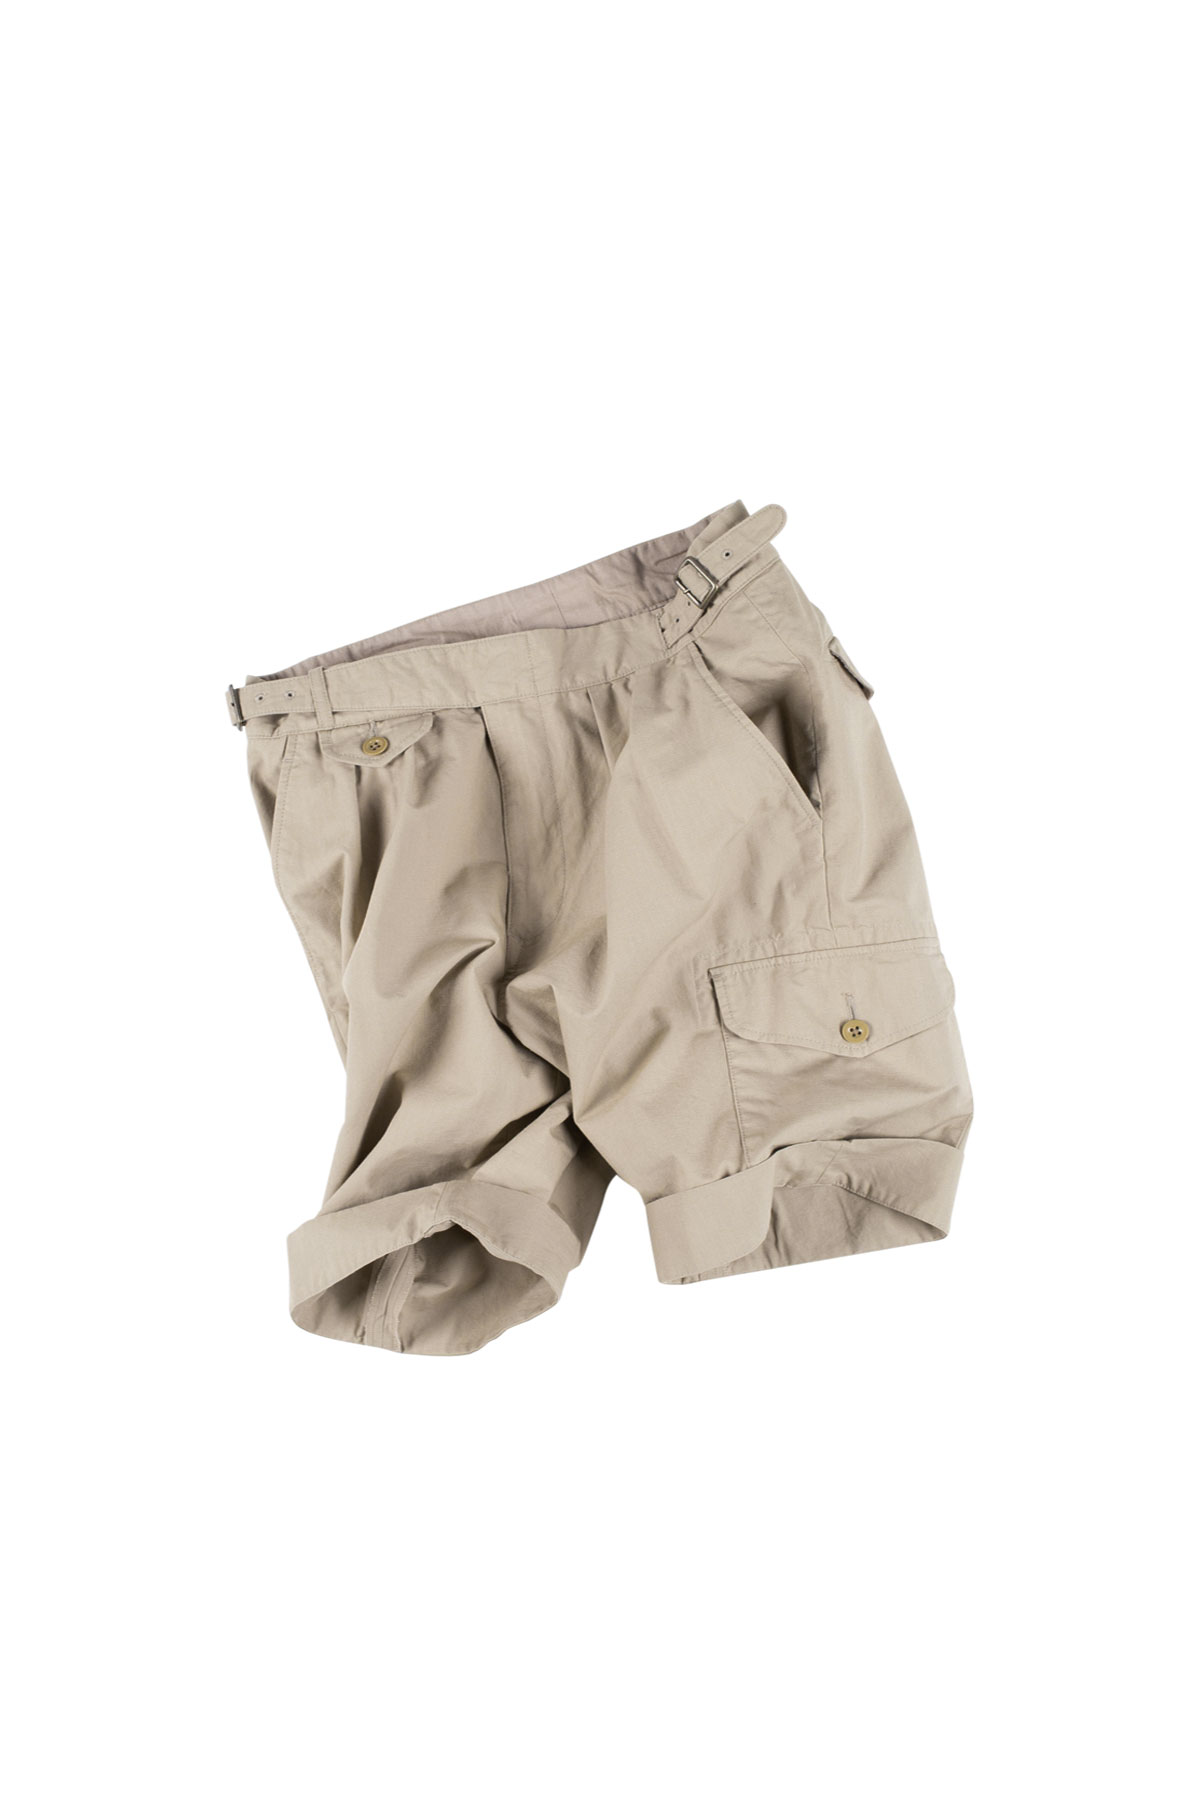 Kenneth Field : Gurka Shorts Ripstop (Beige)